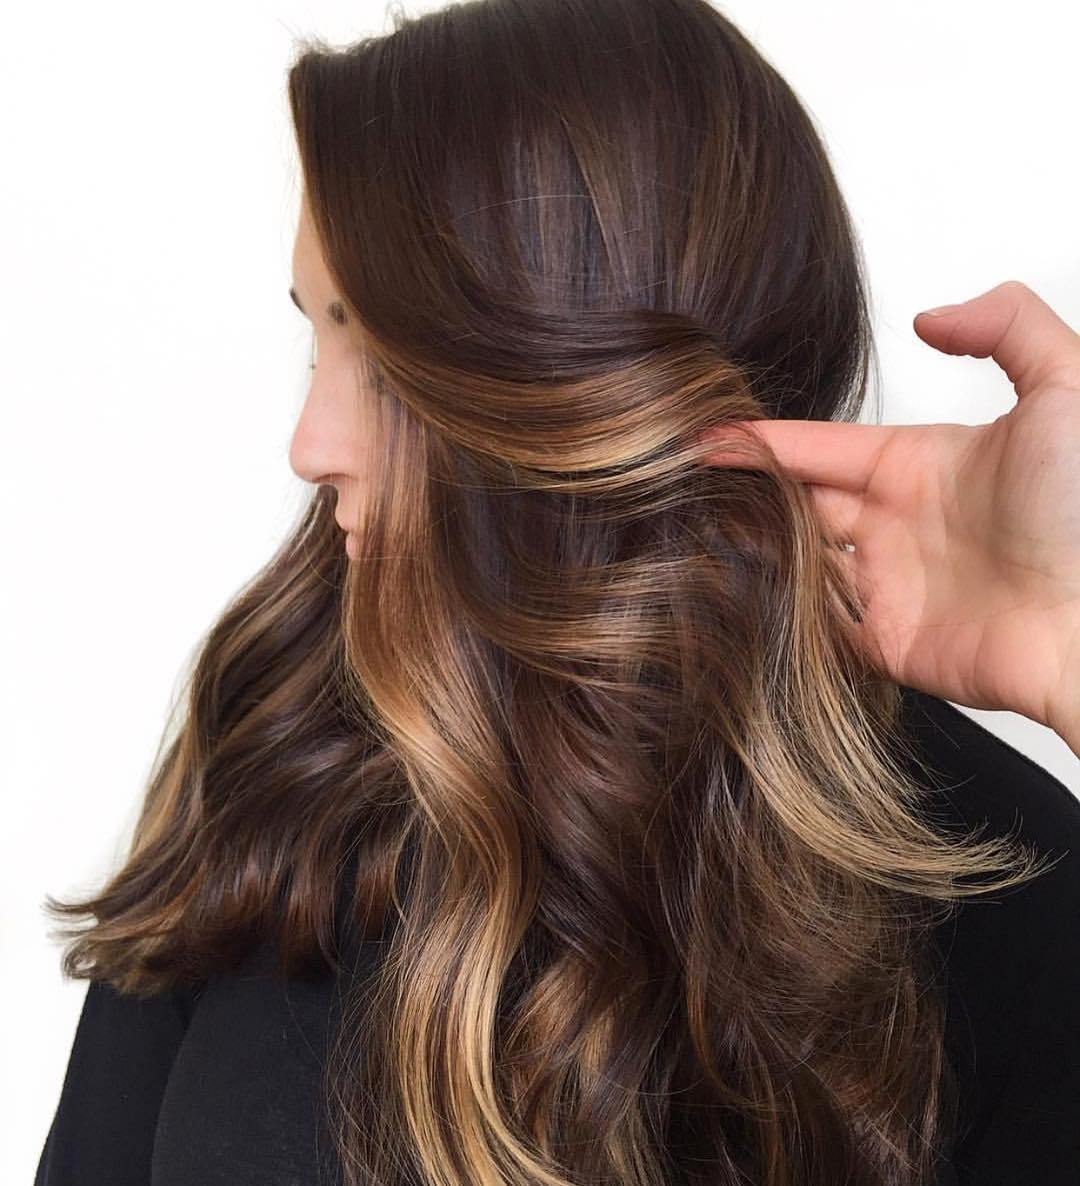 Warm light-blonde highlights in waves